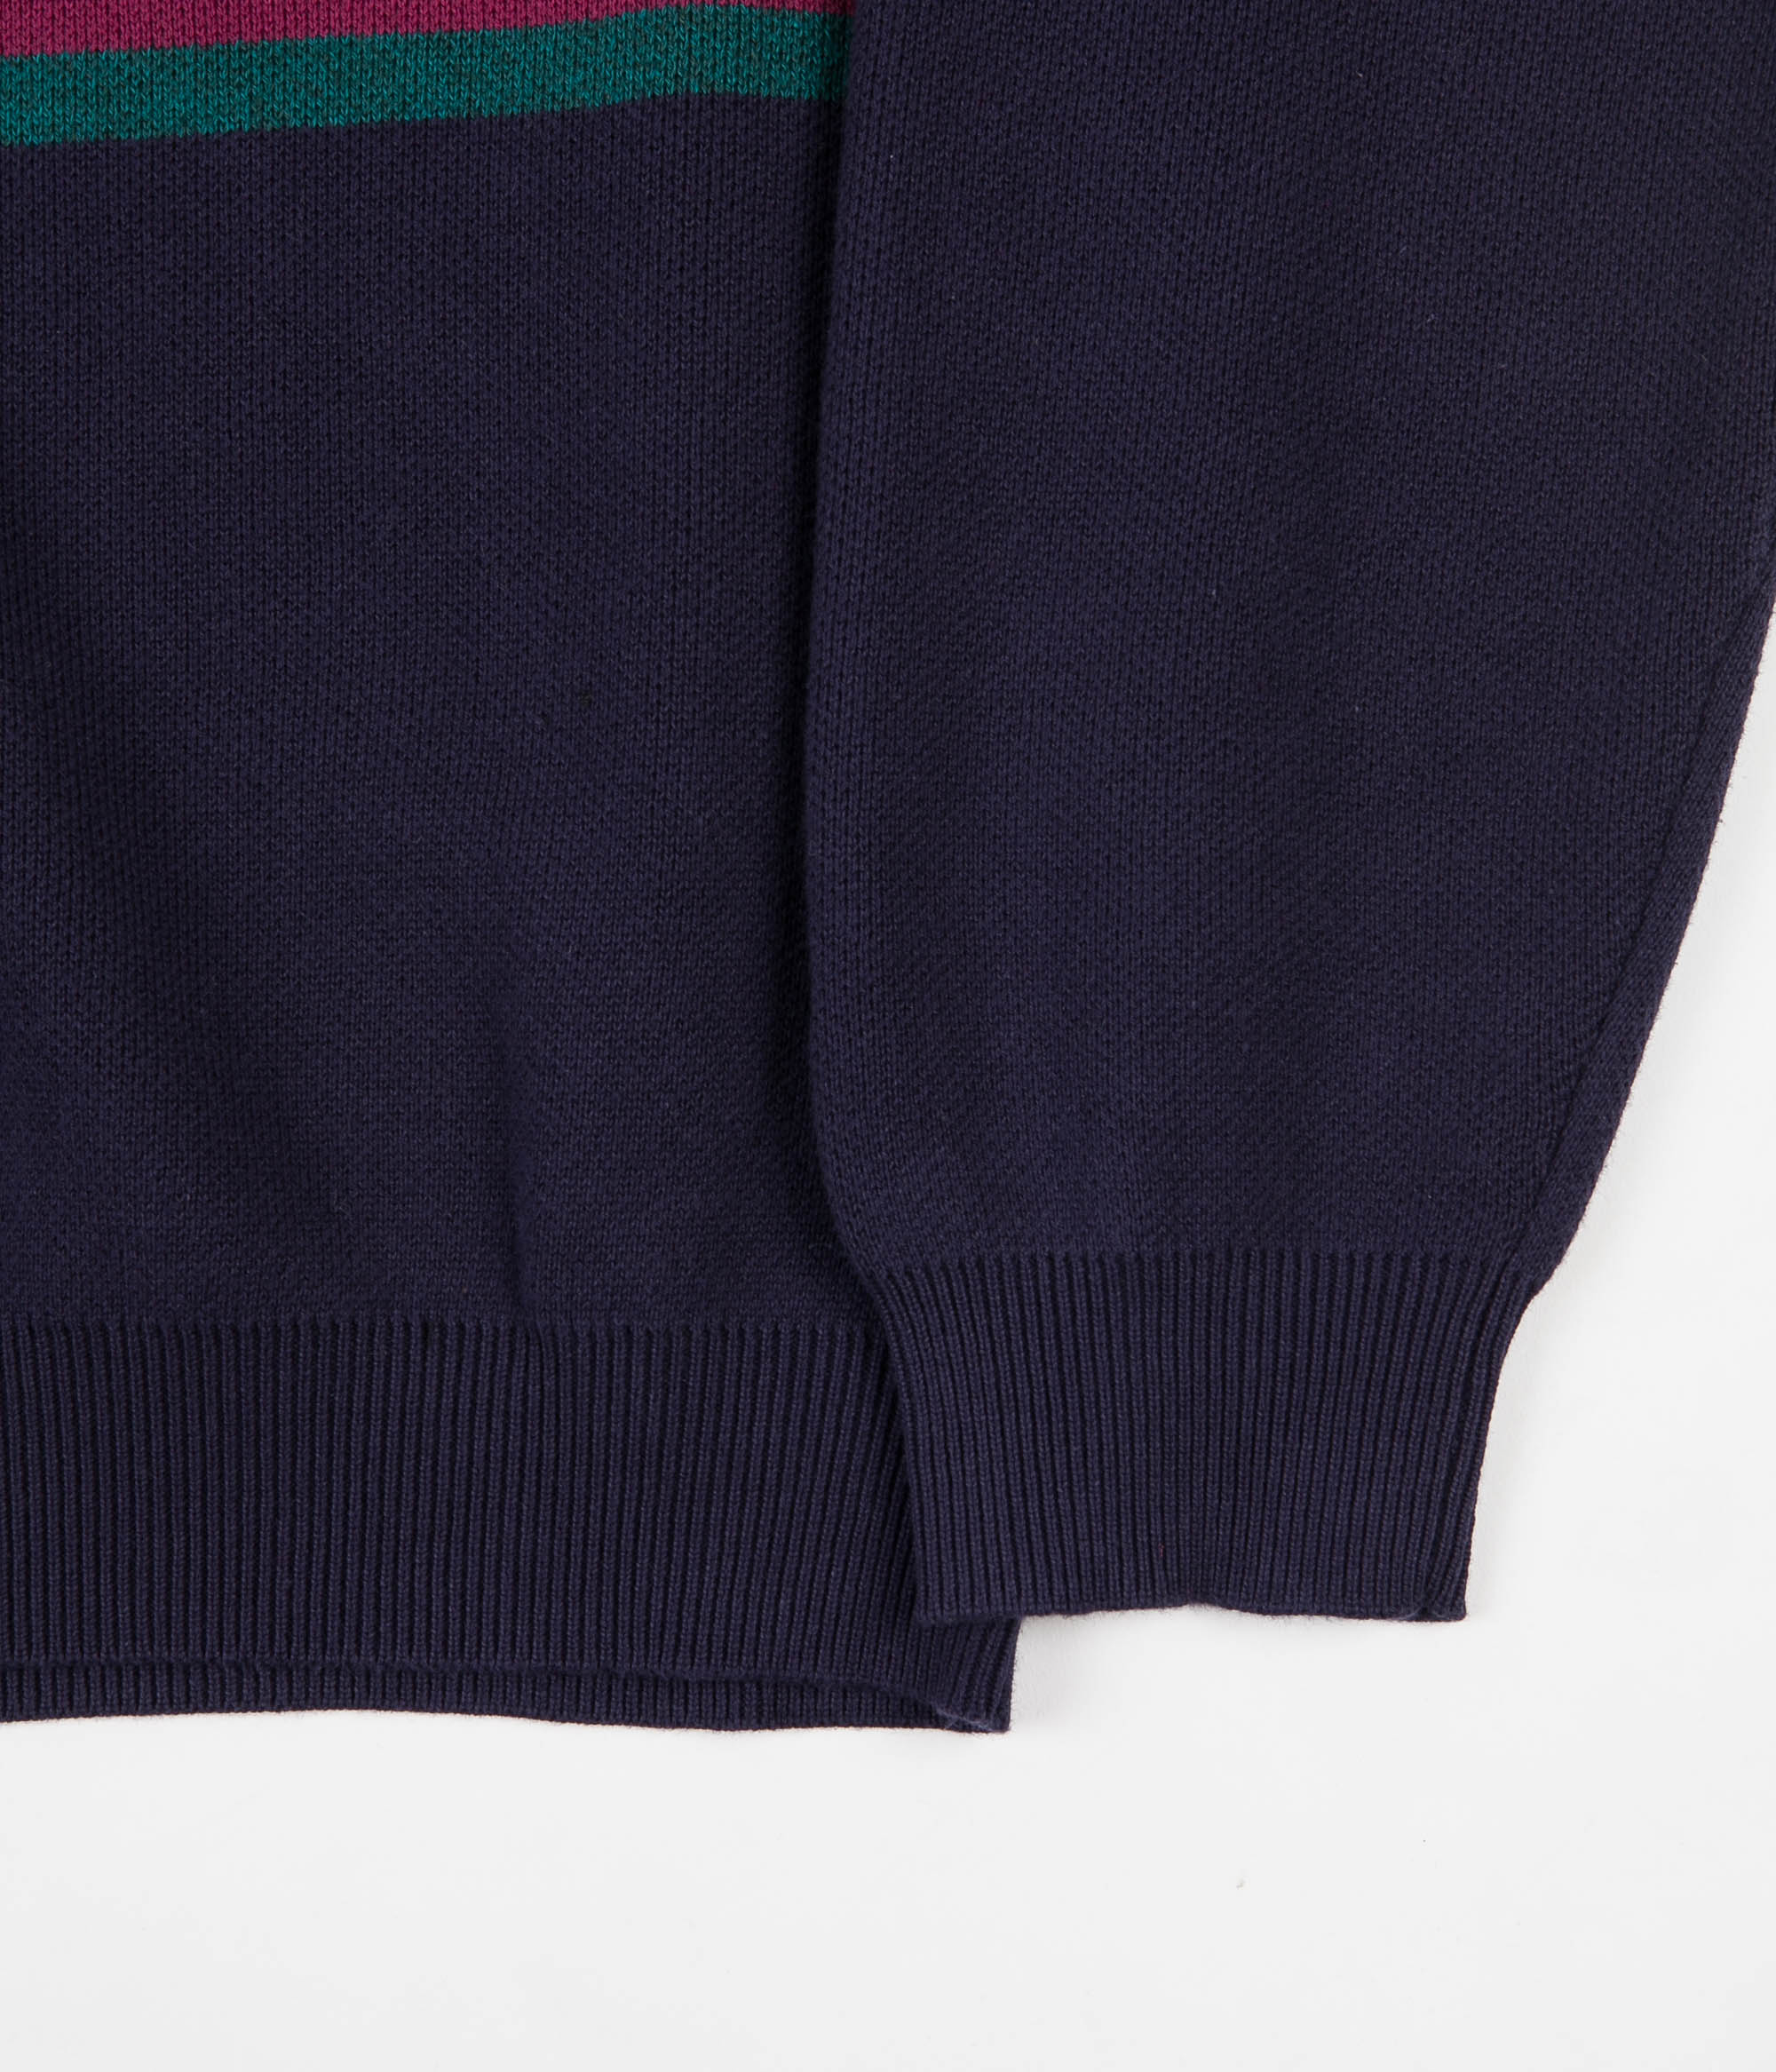 Yardsale South Bay Roll Neck Knitted Sweatshirt - Indigo